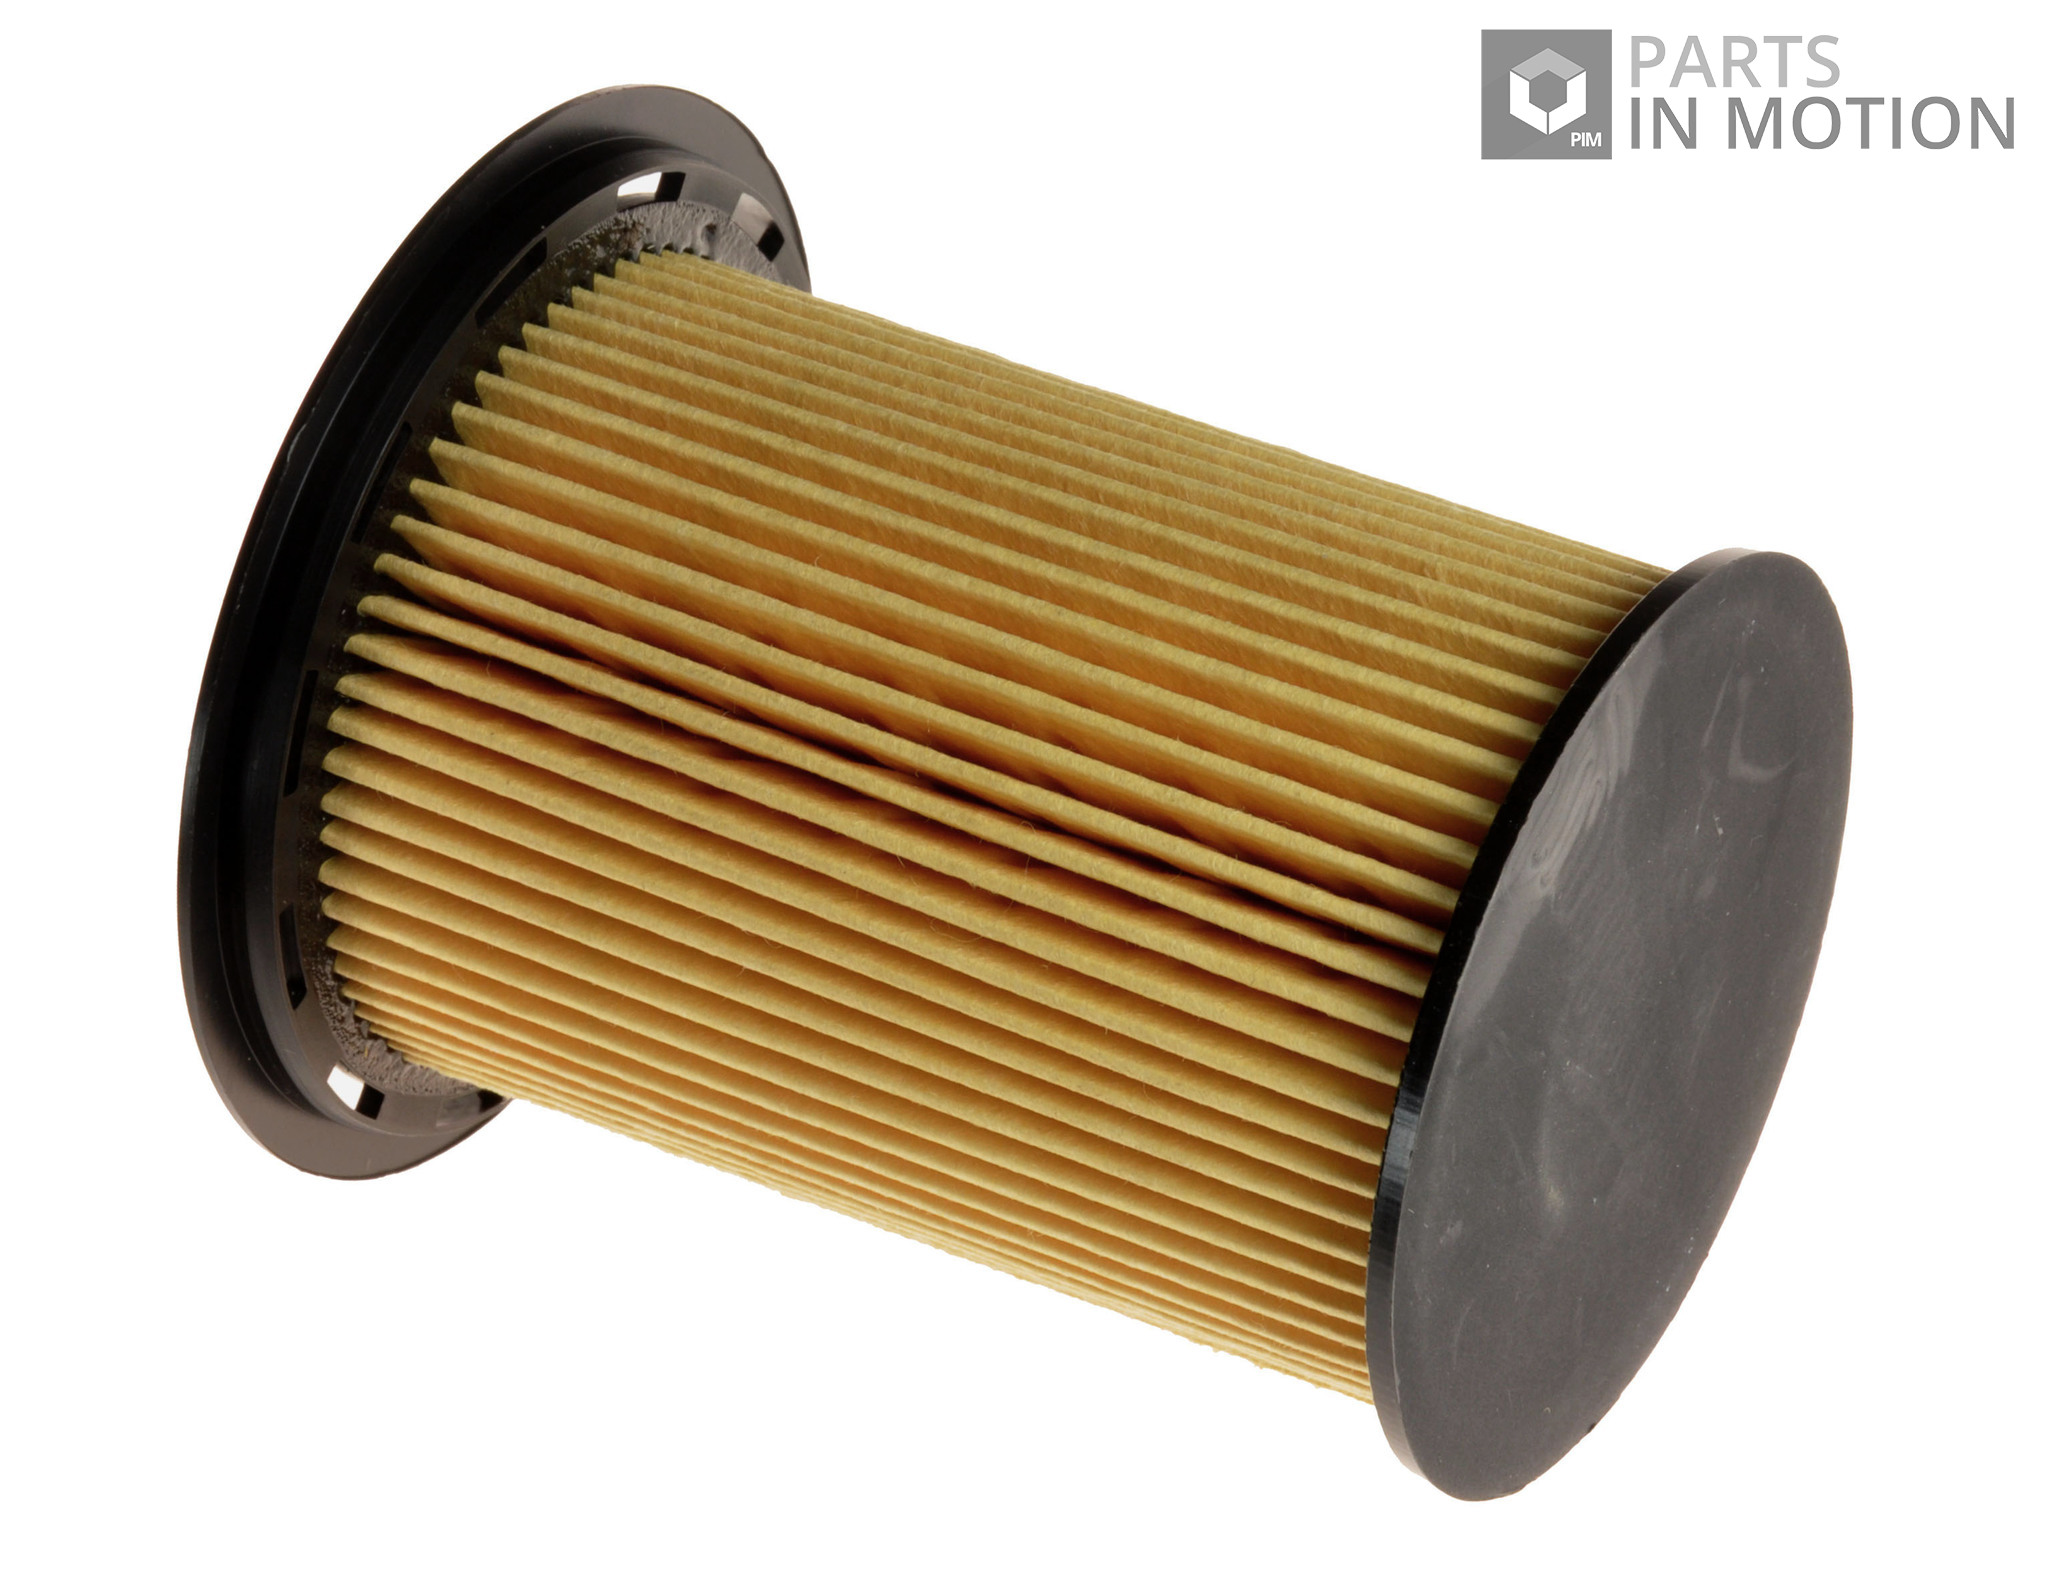 OPEL MOVANO 3.0D Fuel Filter 2003 on ADL Genuine Top Quality Replacement New